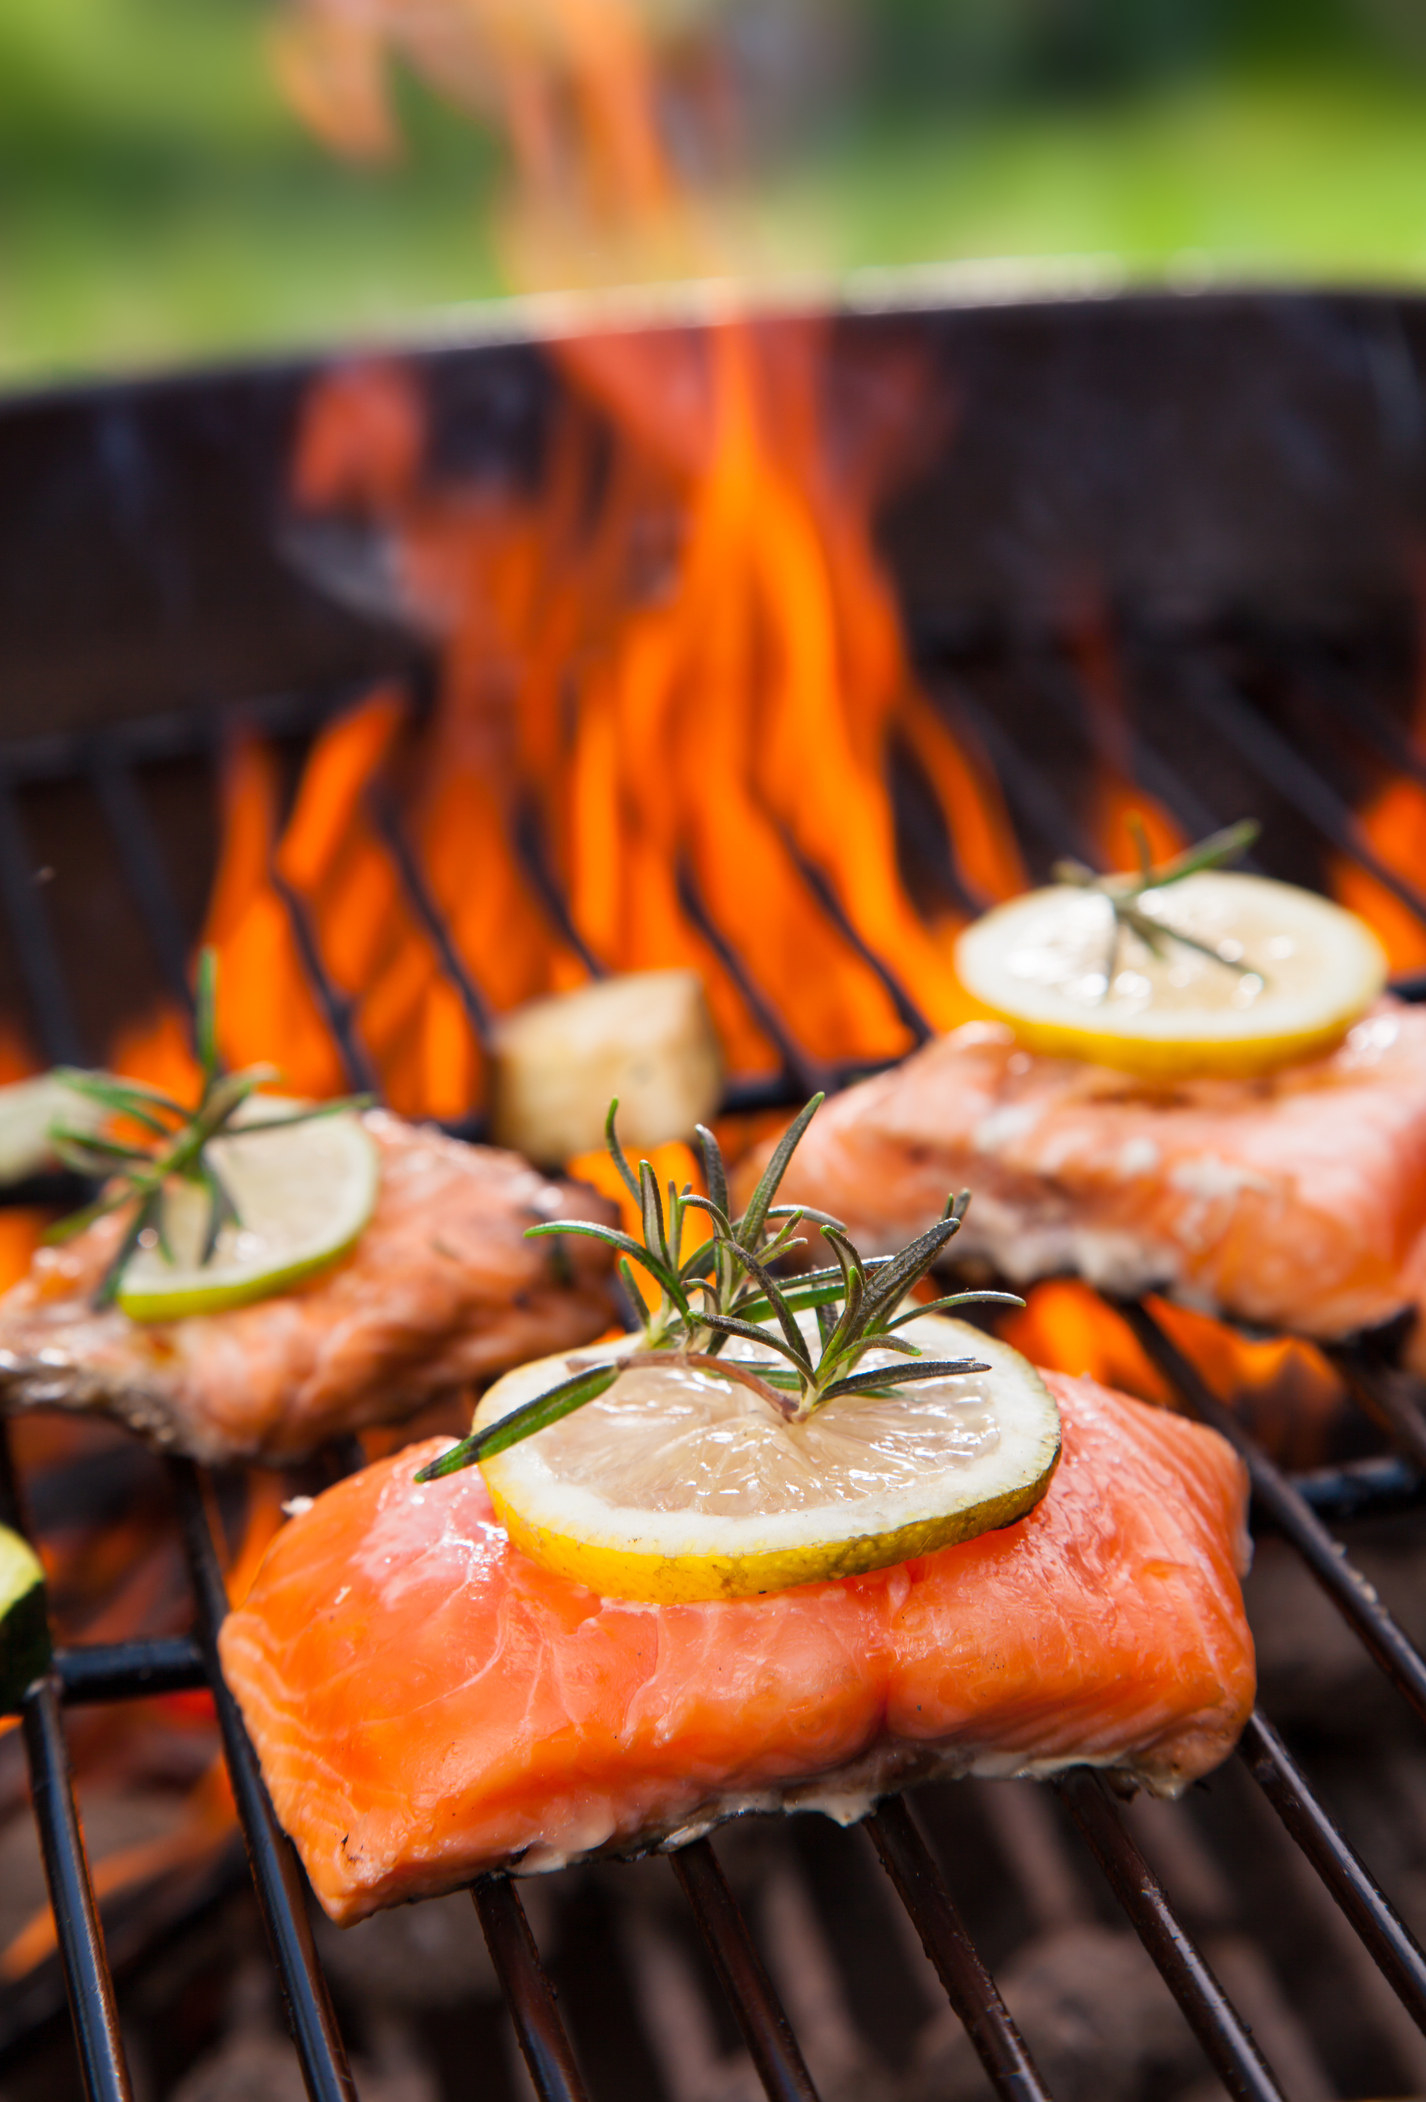 Three salon fillets with lemon and rosemary on a lit barbecue.